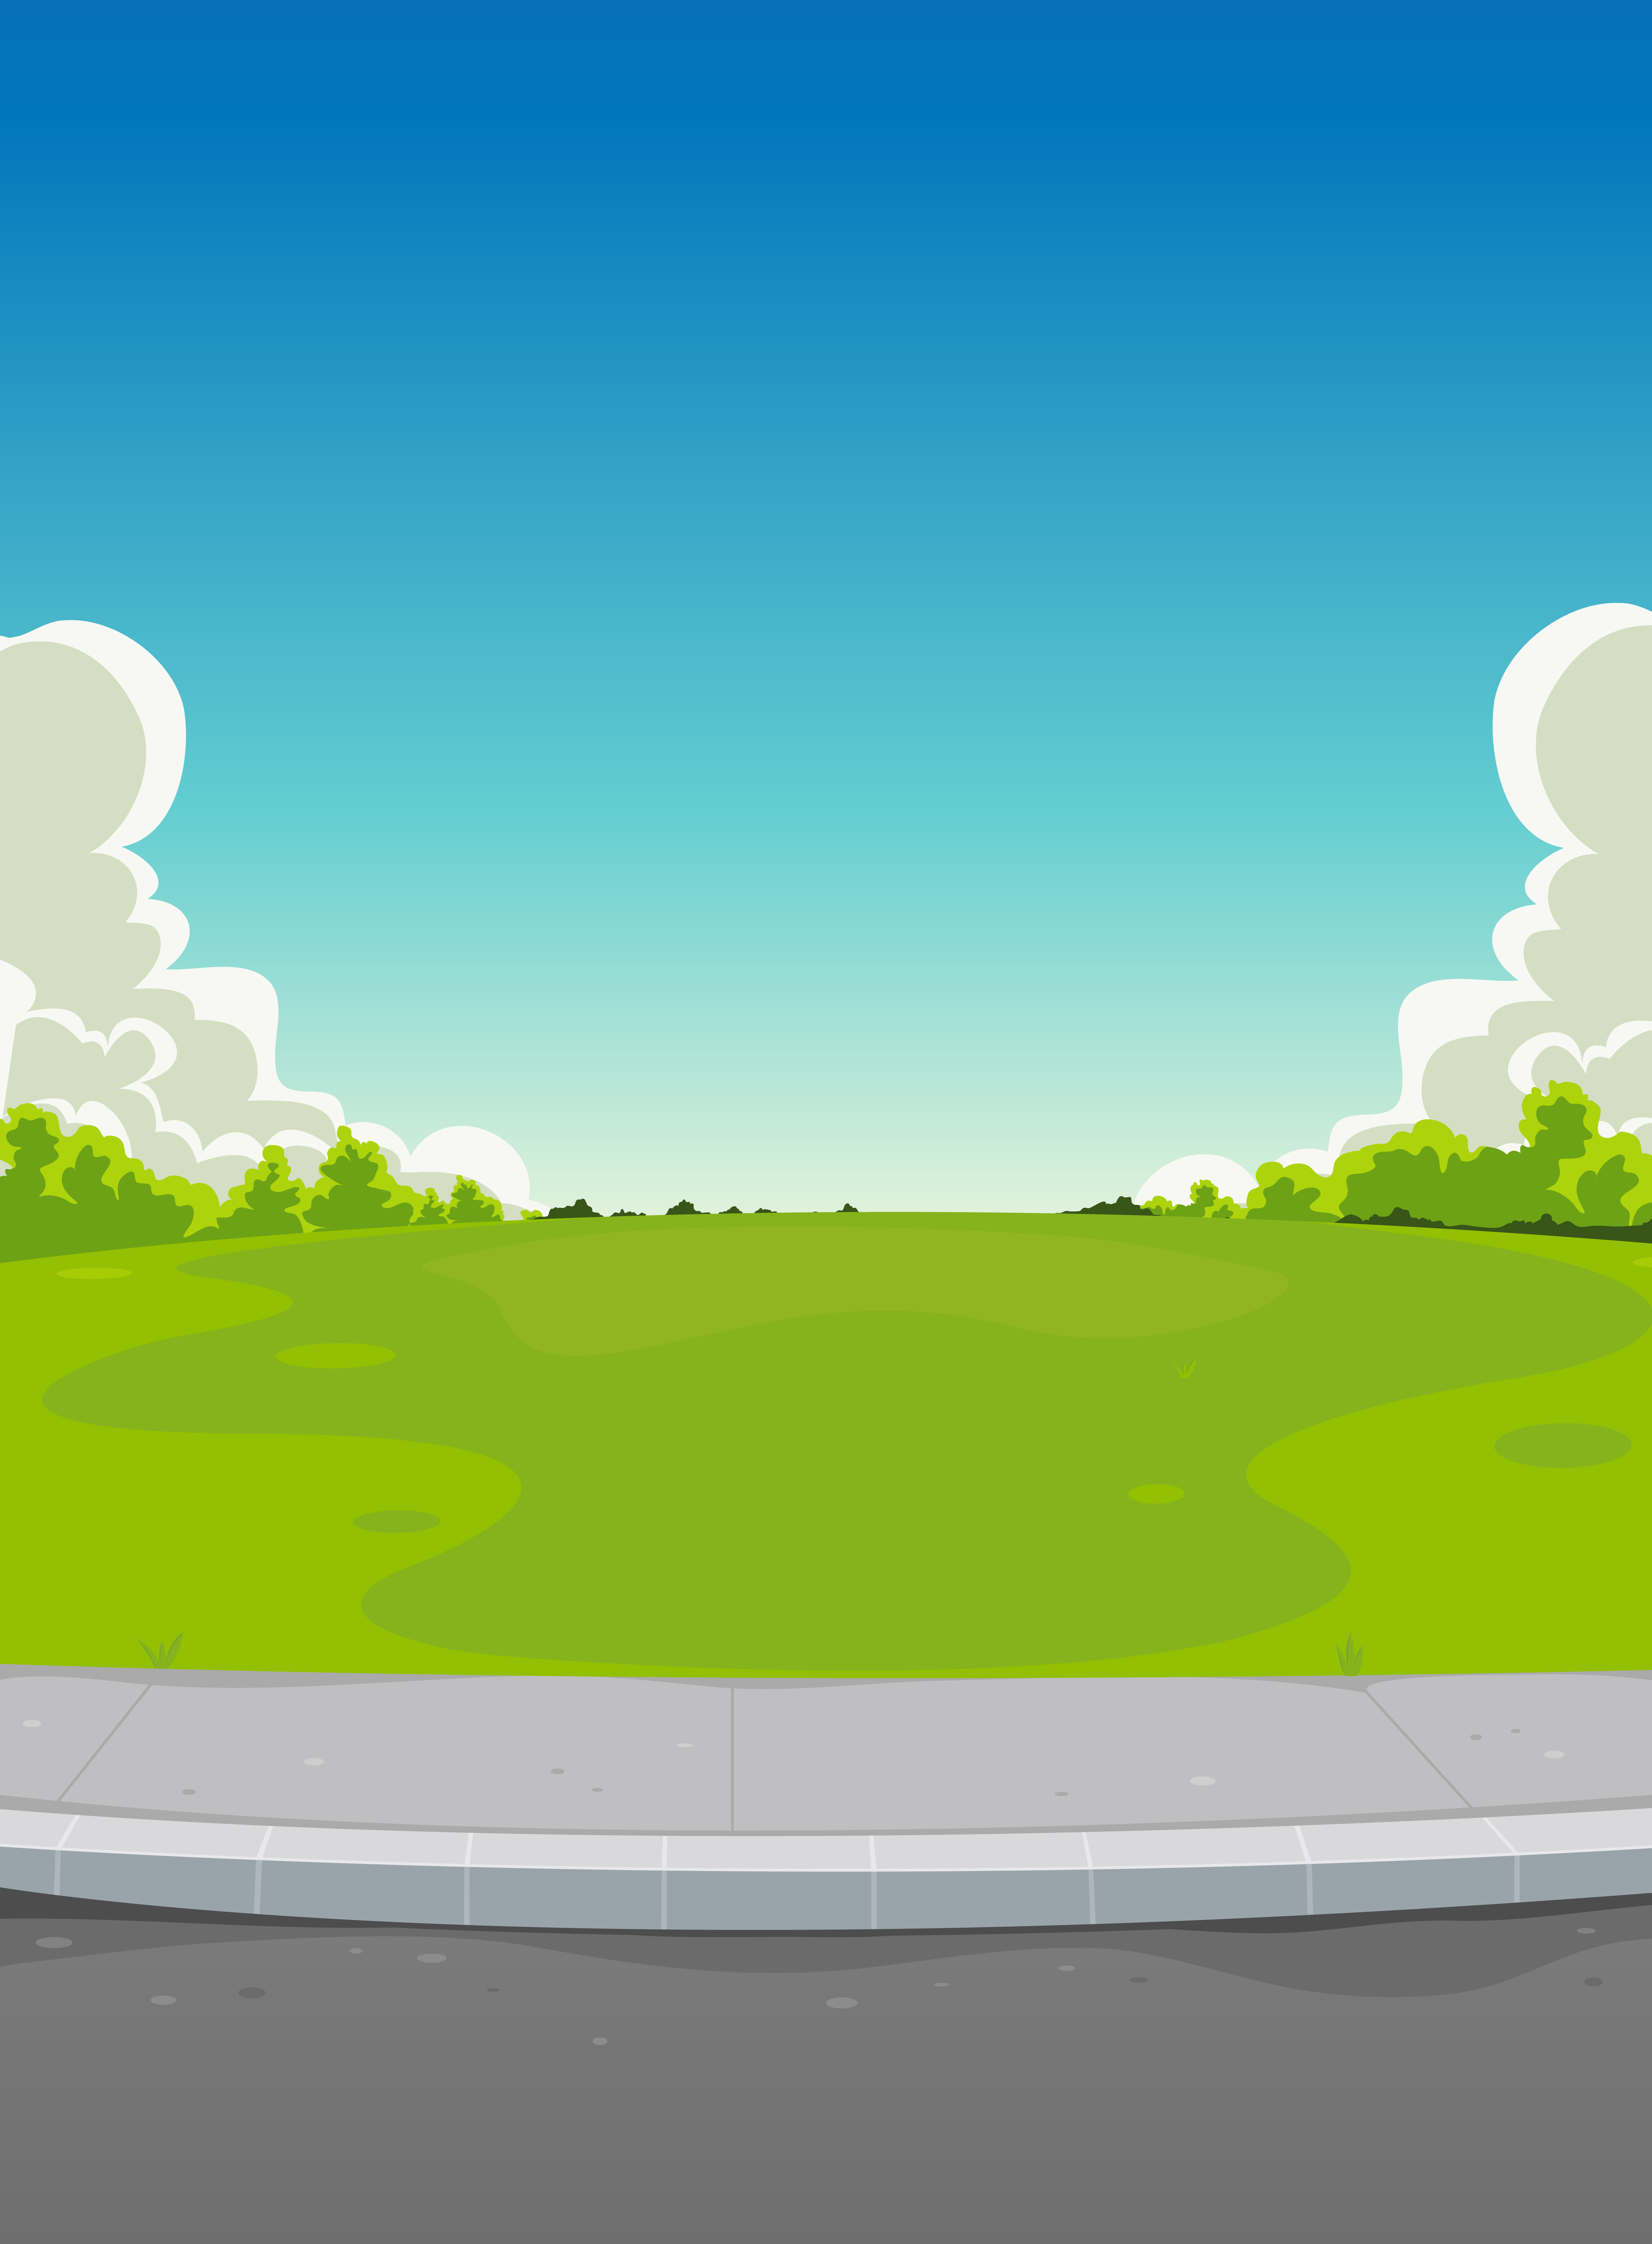 Pavement And Green Park Background Download Free Vectors